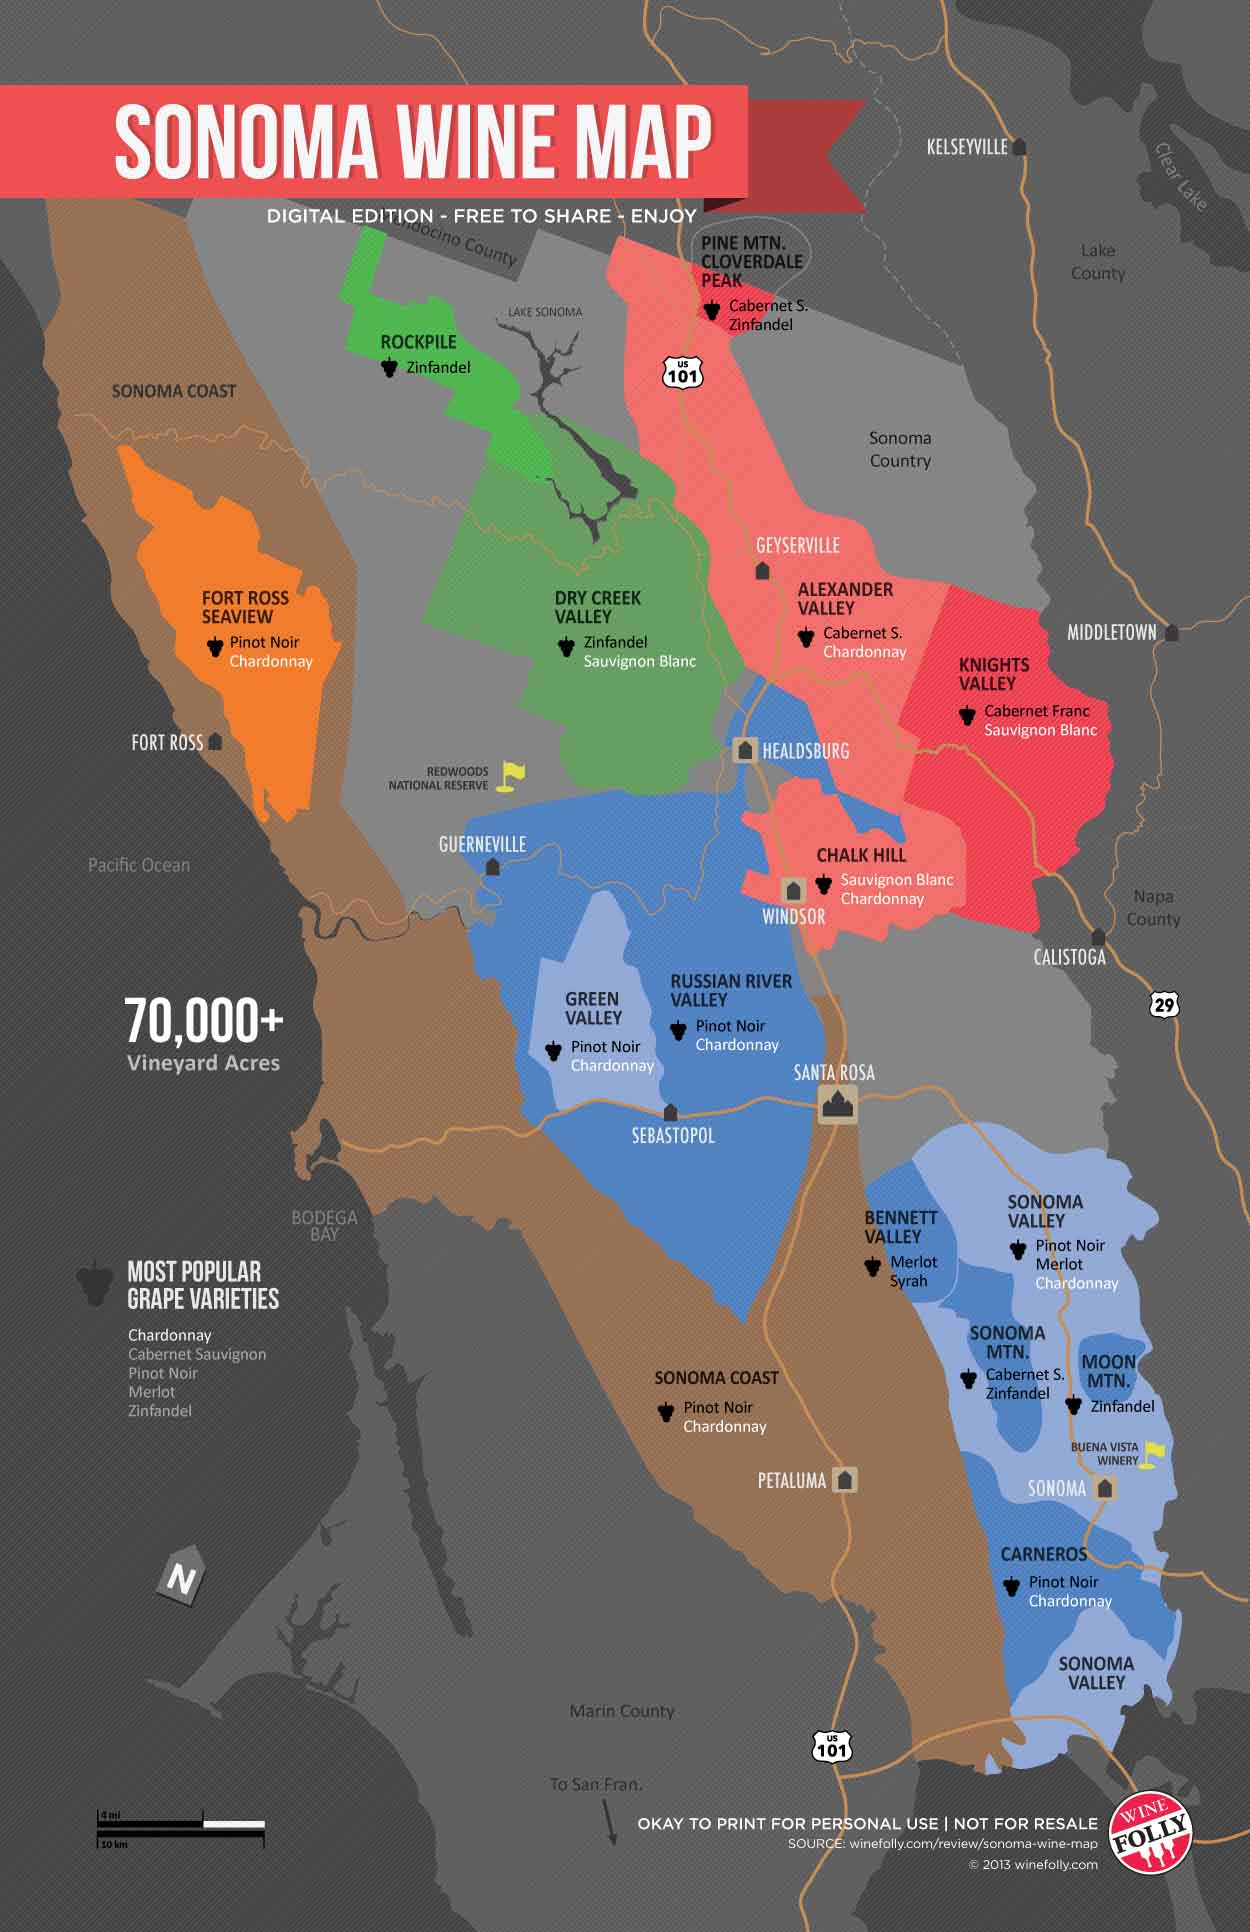 Sonoma-Wine-Map-wine-folly